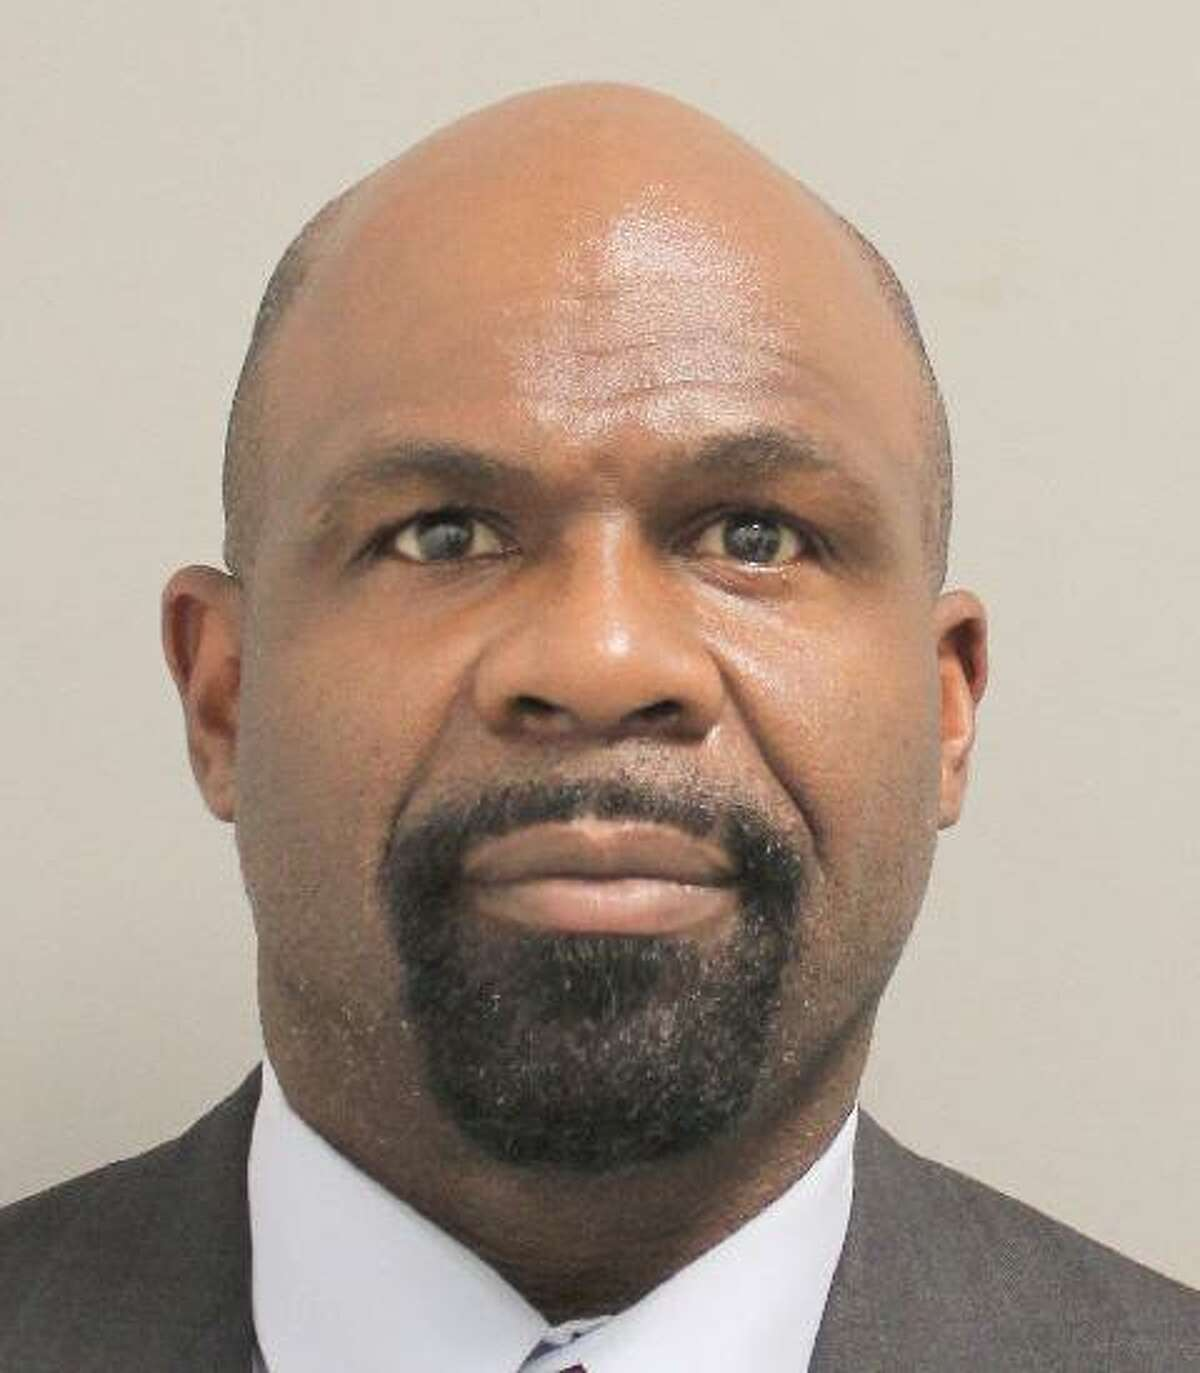 Hodgie Armstrong, one of four additional former Houston Police narcotics officers Kim Ogg charged with crimes stemming from an investigation into the deadly 2019 drug raid at 7815 Harding street that killed two homeowners.